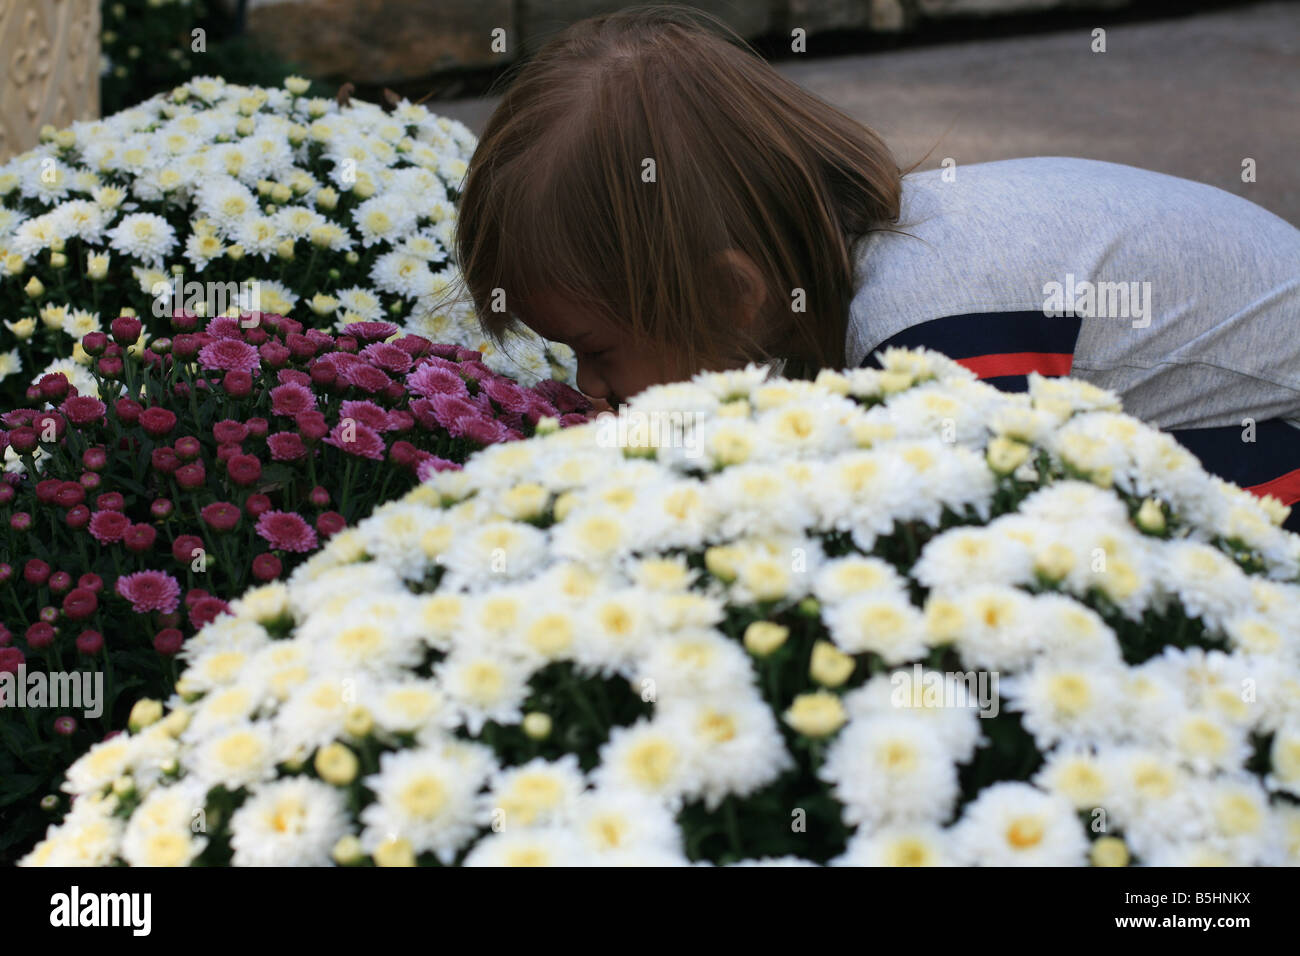 A 2-year-old toddler girl bends over to smell some mums. - Stock Image